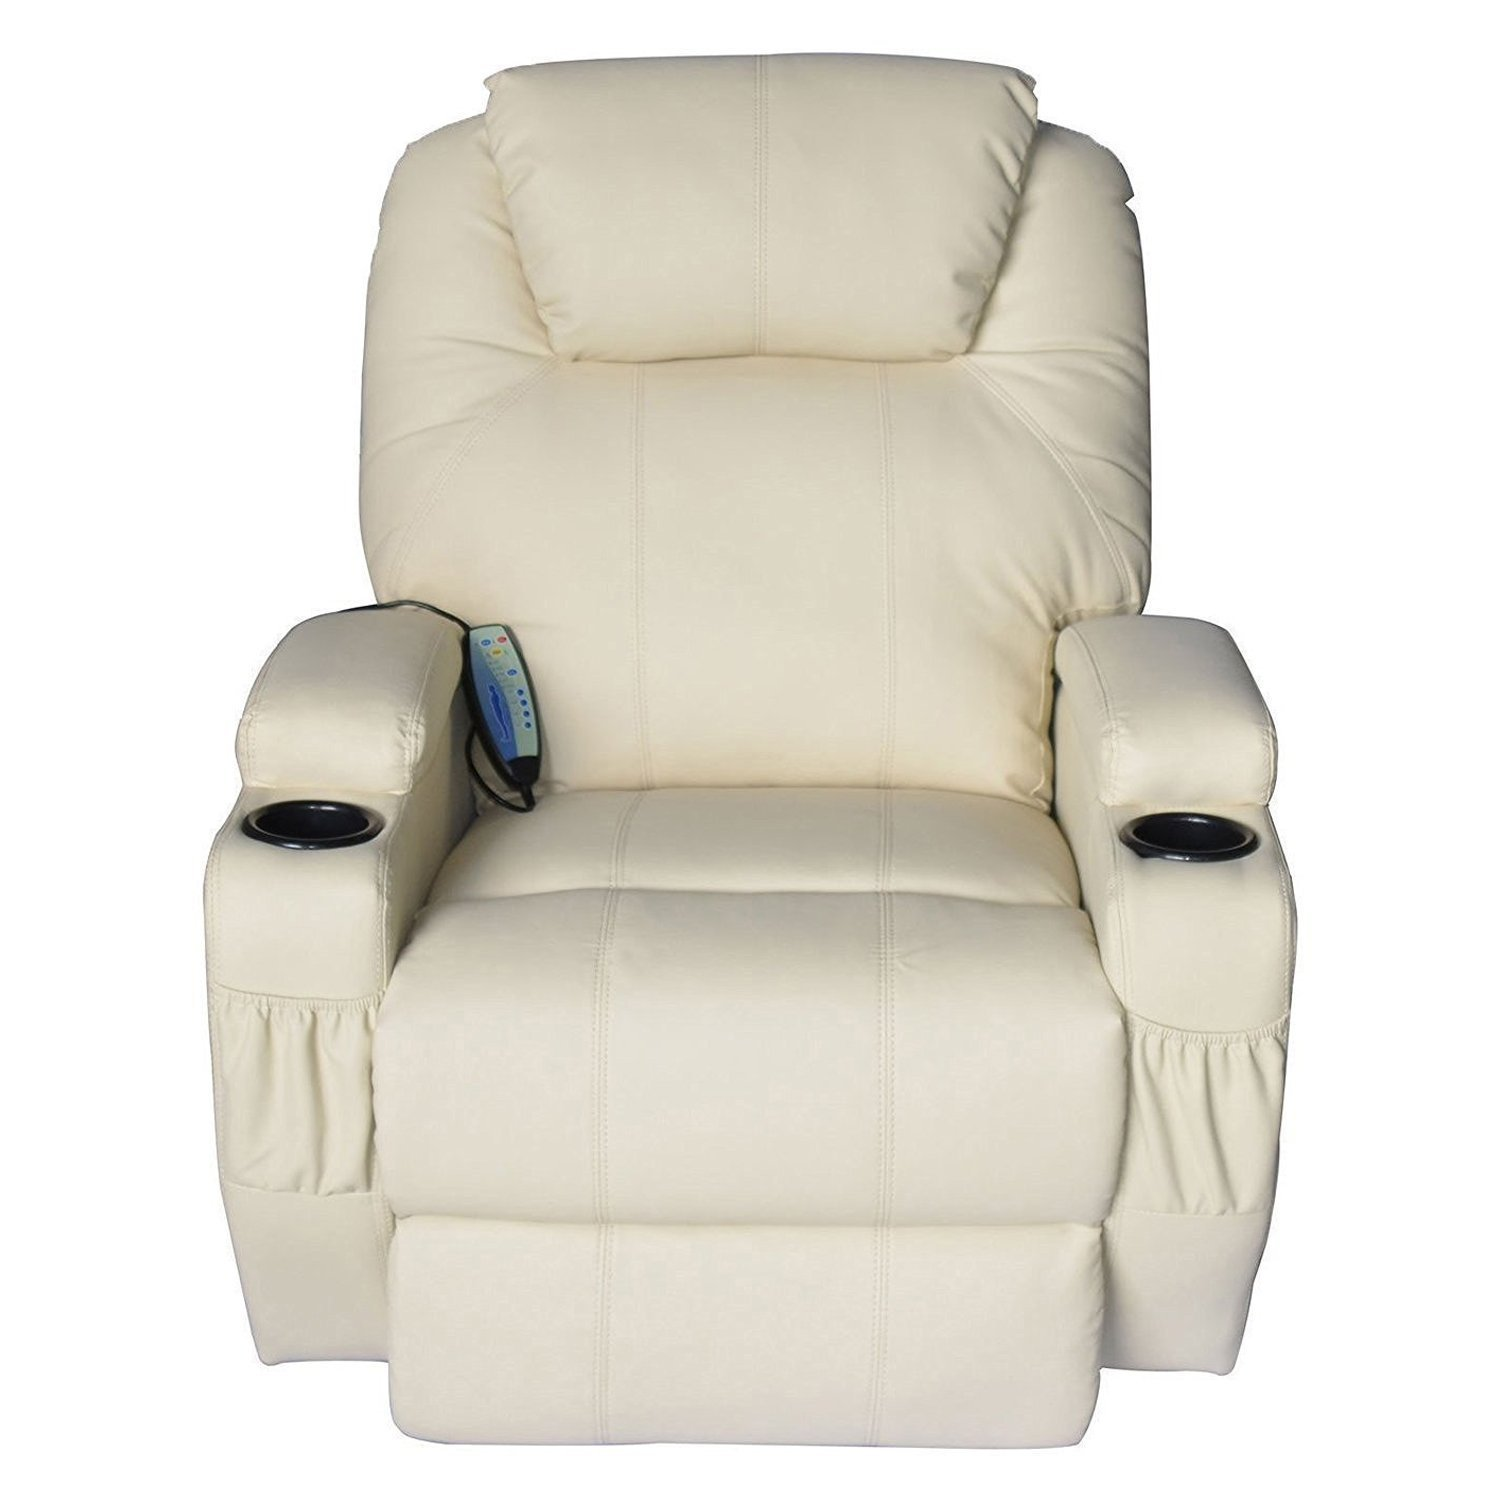 Massage Recliner Sofa Chair Pu Leather 360 Degree Rocker Swivel Massage Recliner- 8 Vibrating Nodes -Executive Heated w/ Control Back ( 2 of Free Sea Urchin Massage Ball)